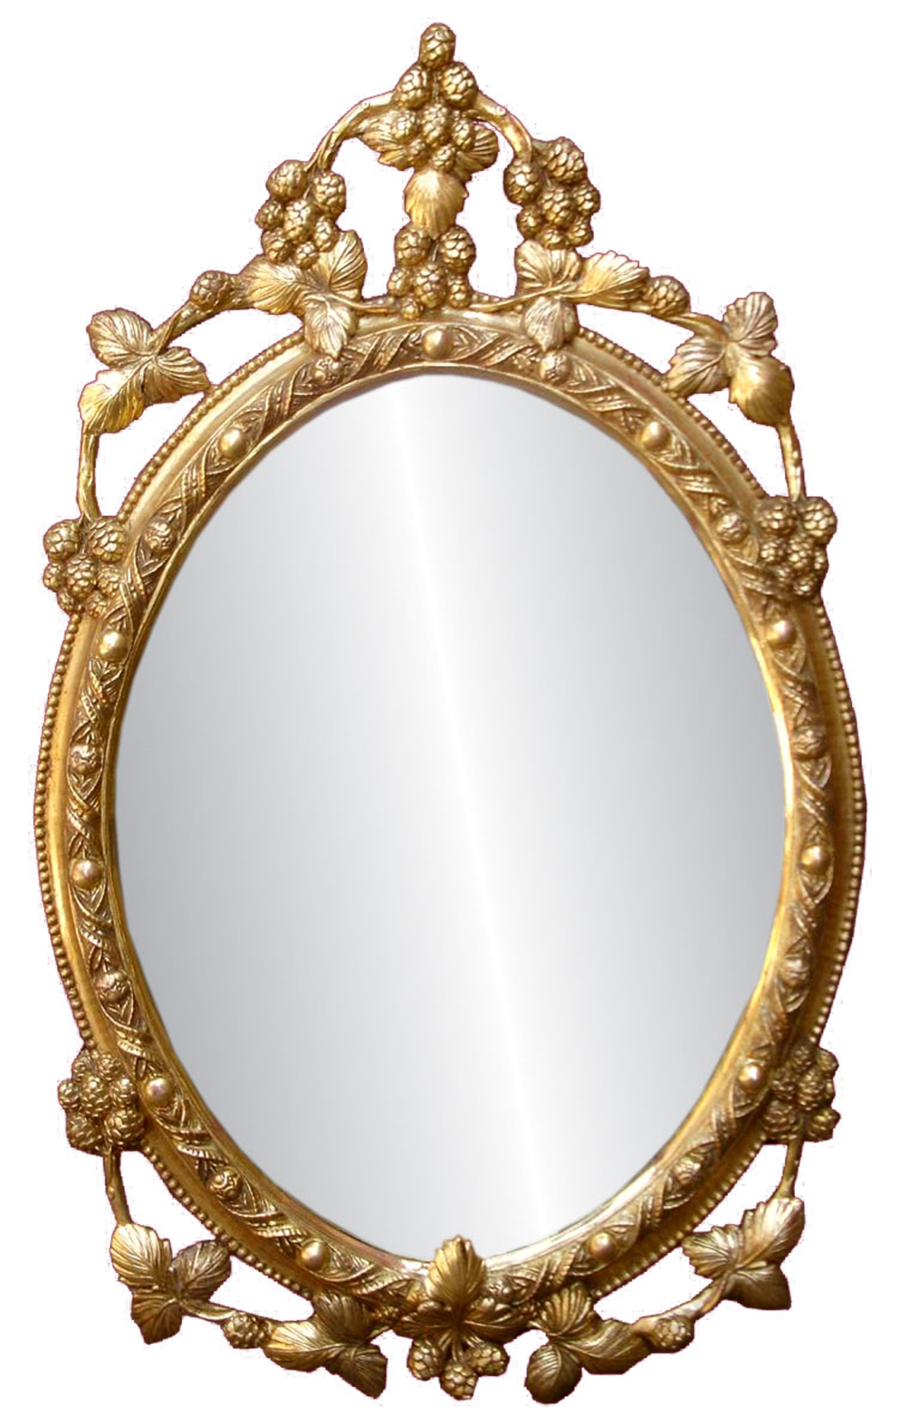 clip royalty free Clipart fairytale free on. Mirror clip antique.